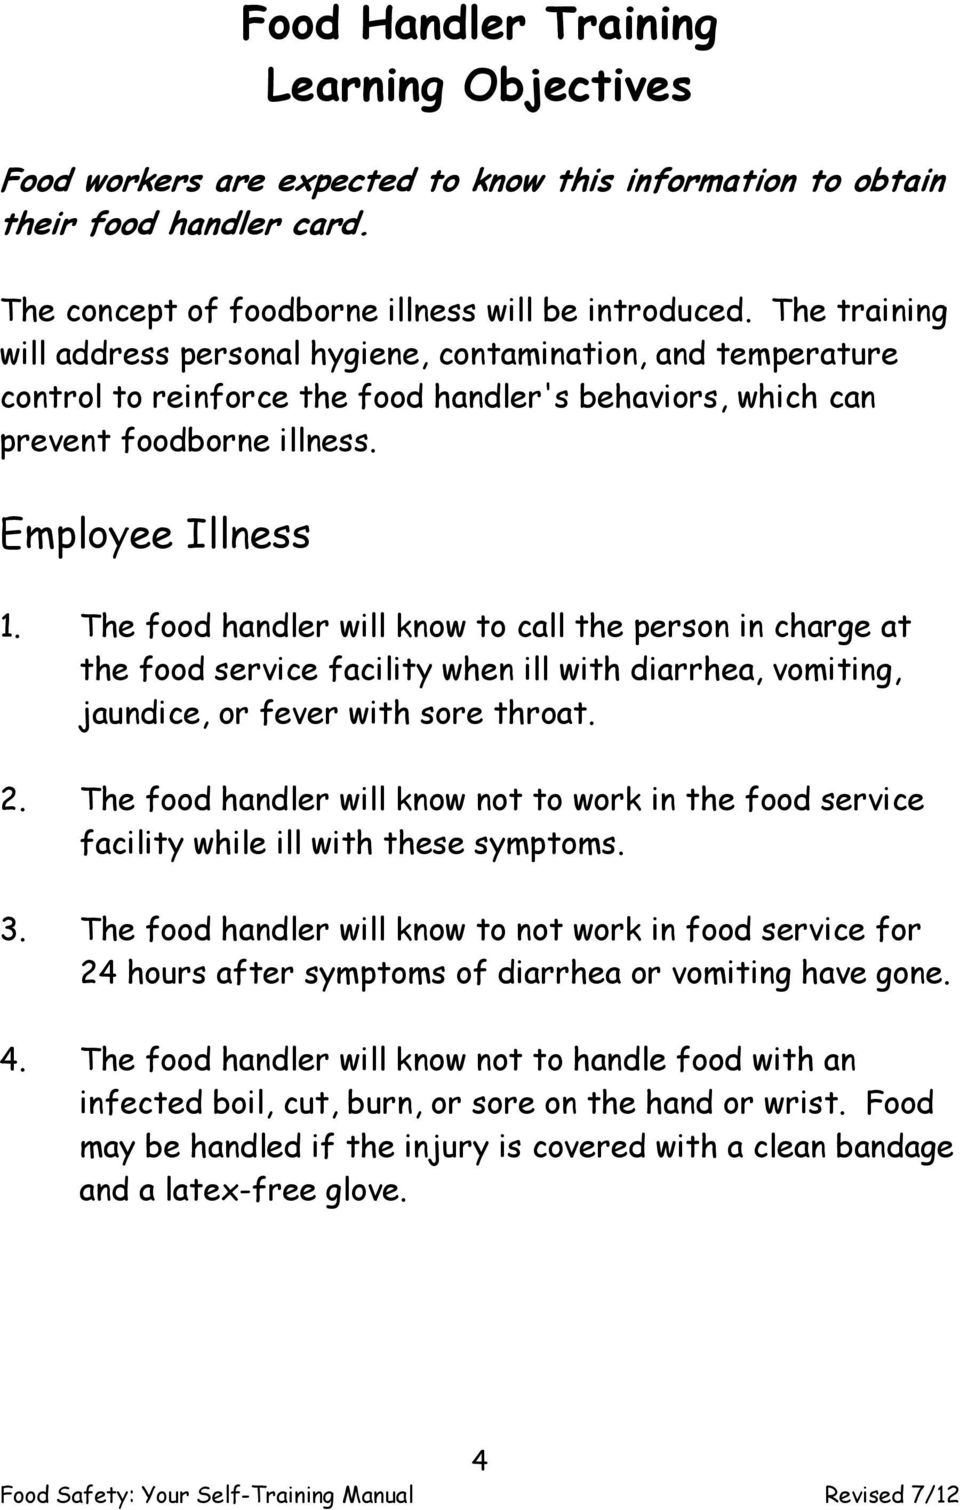 The food handler will know to call the person in charge at the food service facility when ill with diarrhea, vomiting, jaundice, or fever with sore throat. 2.